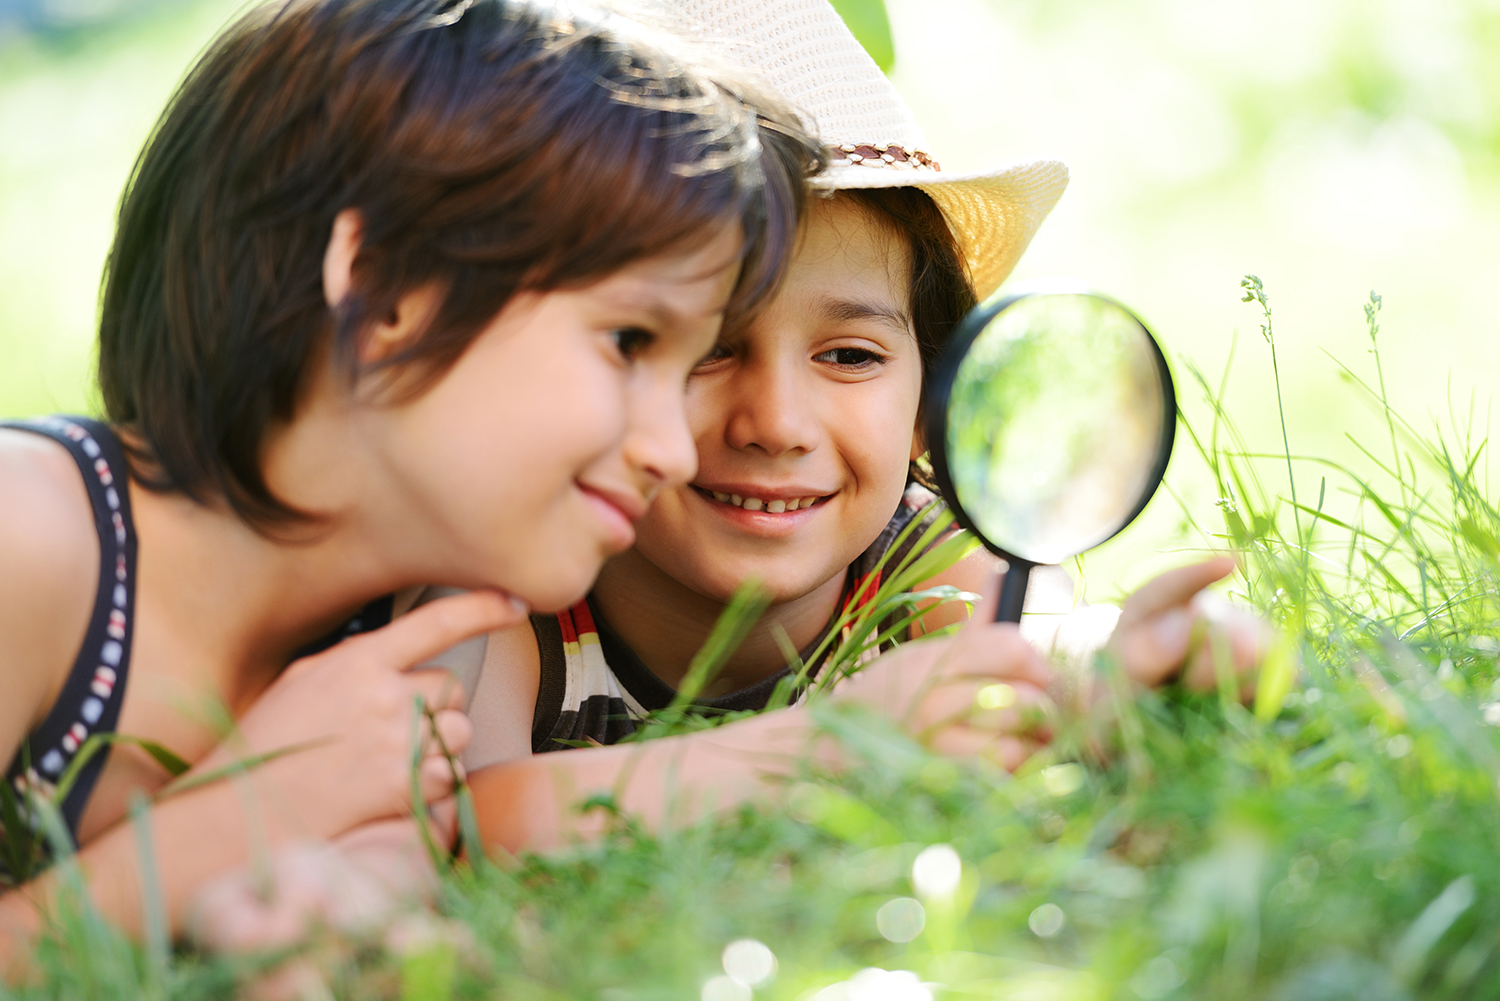 nature outdoors investigate playing wellness summer forest iowa exploring children ad fall